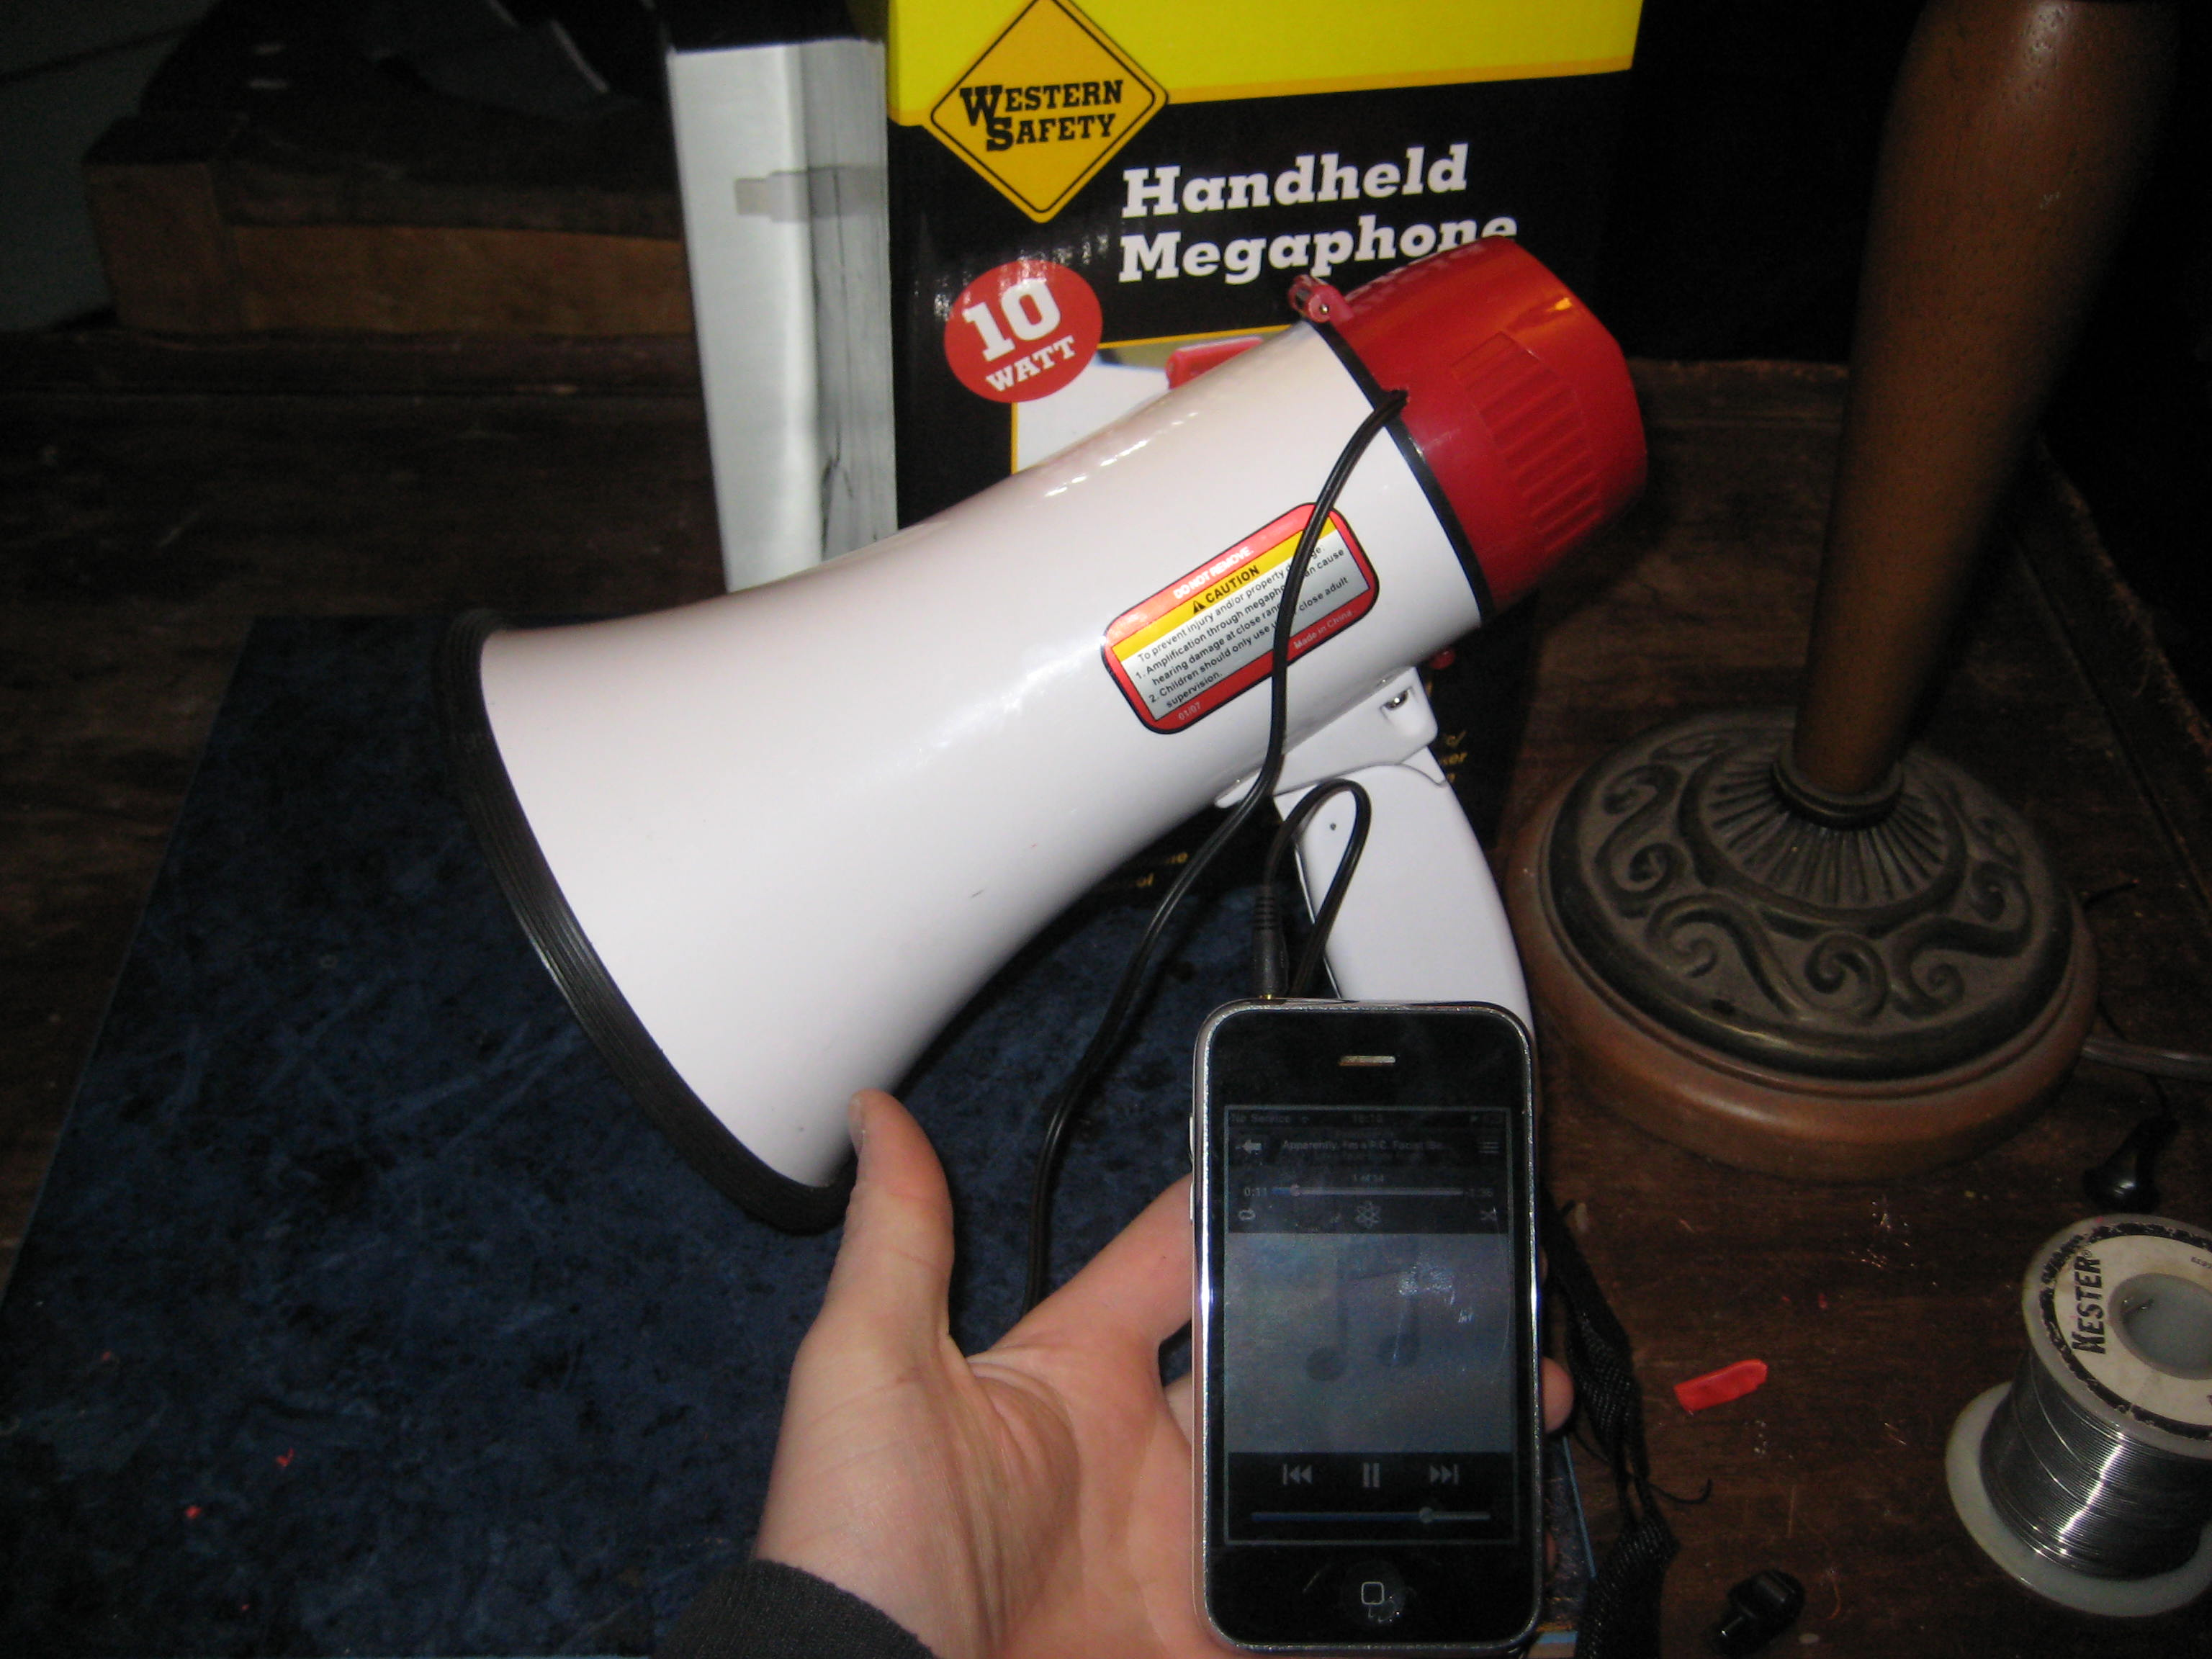 Add an audio input to a megaphone